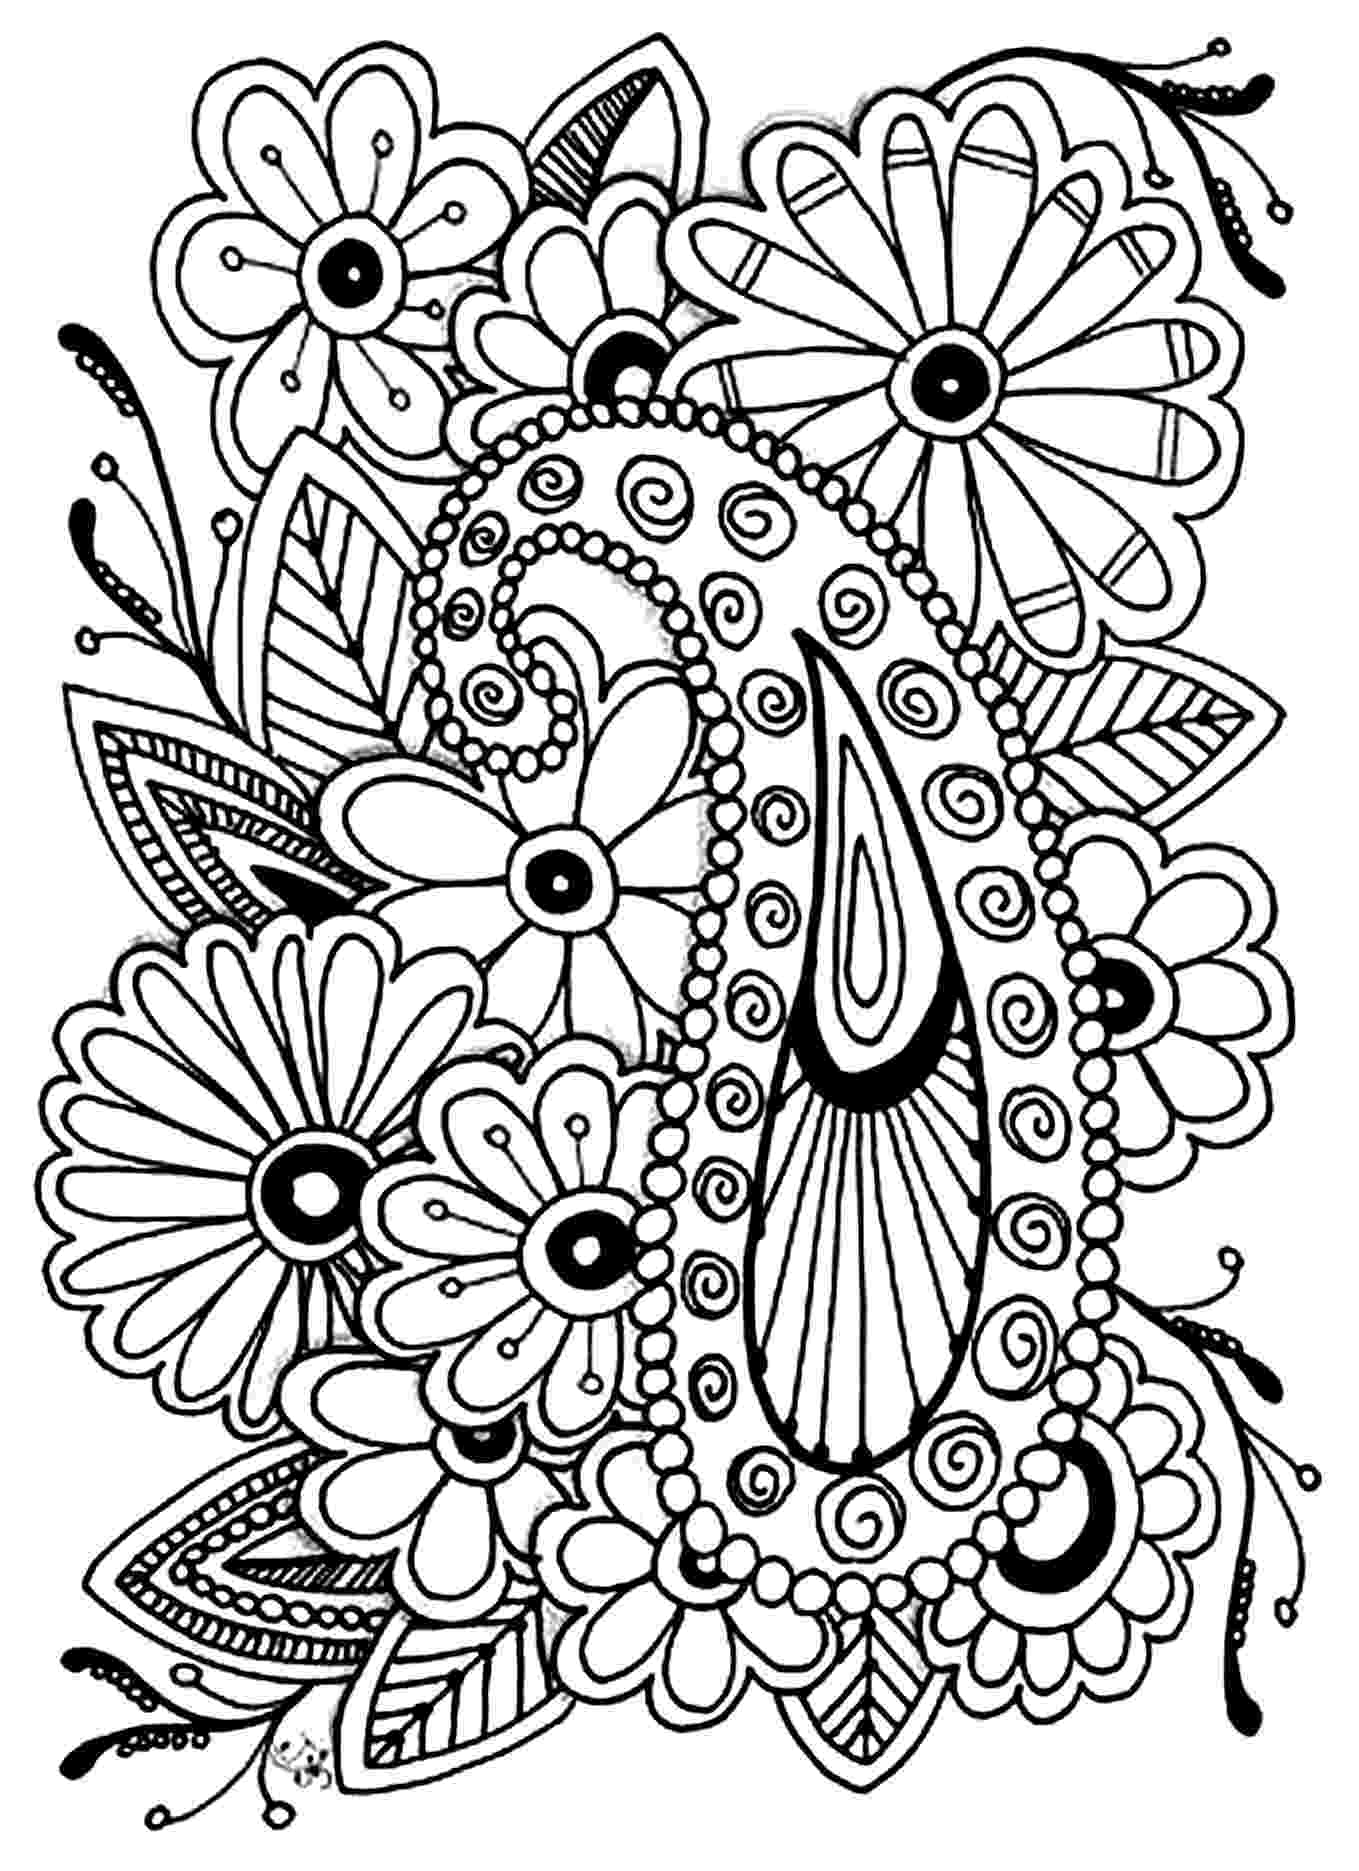 coloring patterns flowers coloring books for grown ups calvin was right patterns coloring flowers